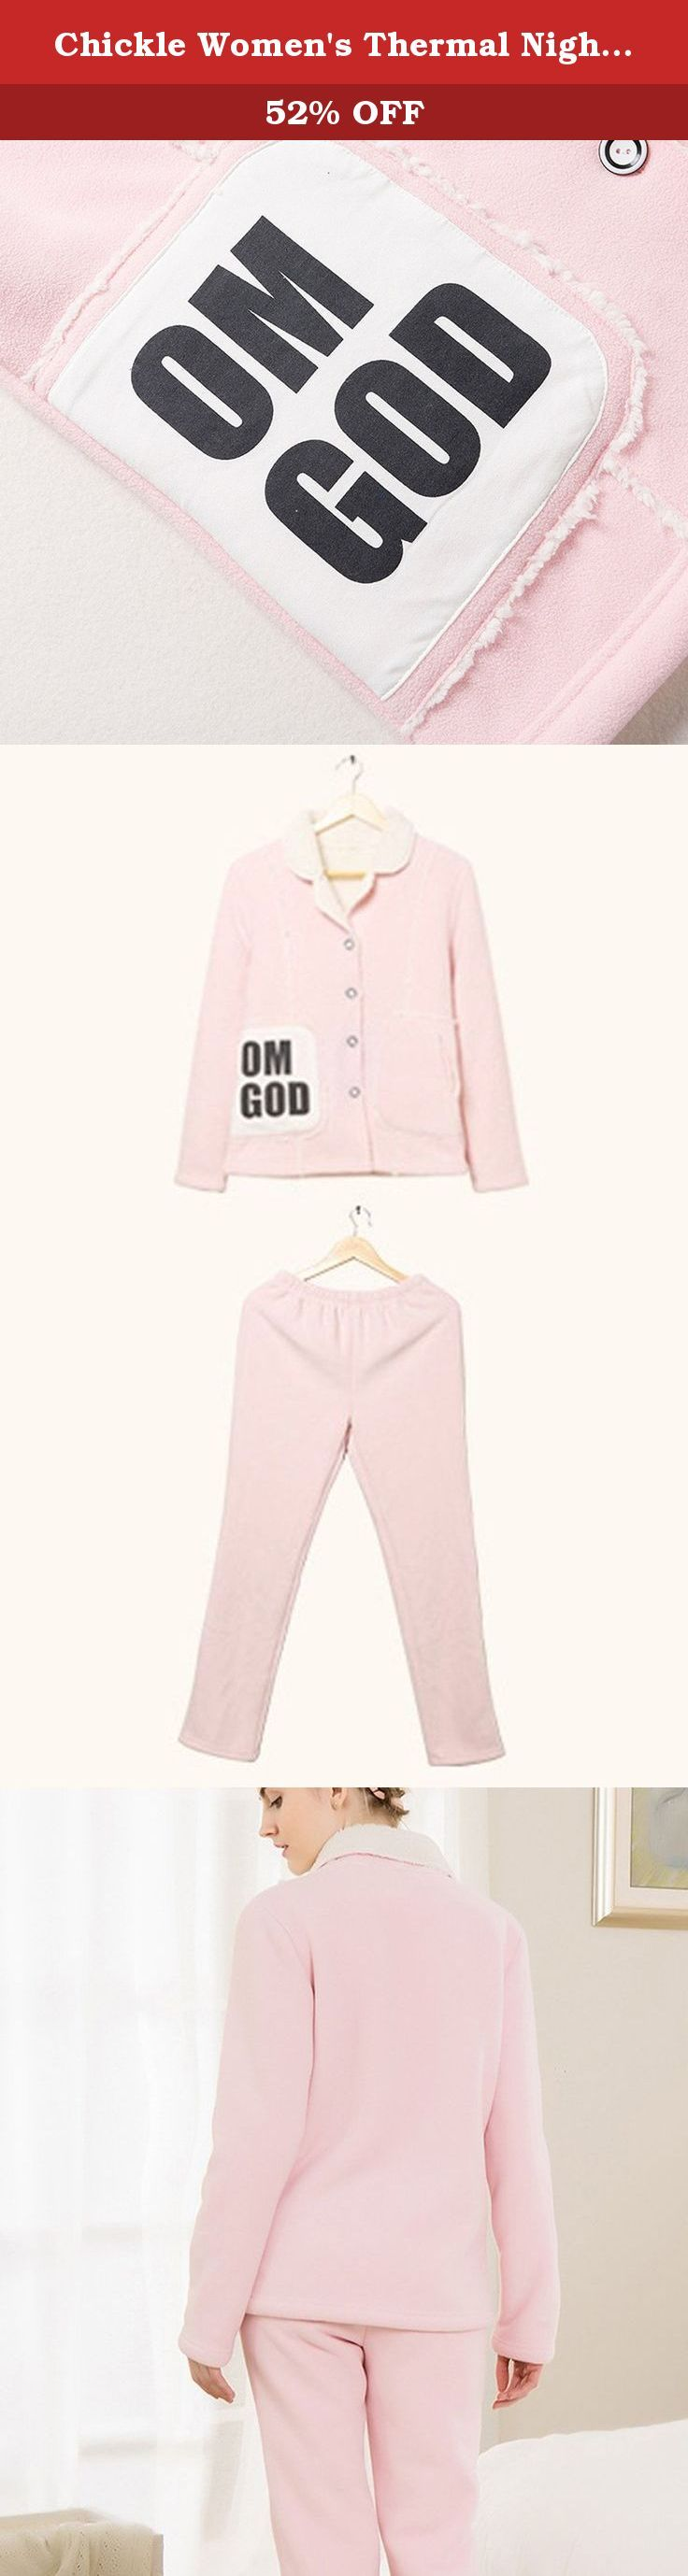 Chickle Women's Thermal Nightgown Winter Fleece Pajama Set Loungewear Pink. Winter fleece pajama set featuring notched collar,big sidekick with wording pattern, button-end clouse, elastic waist band,sweety style sleepwear for girls and young ladies.